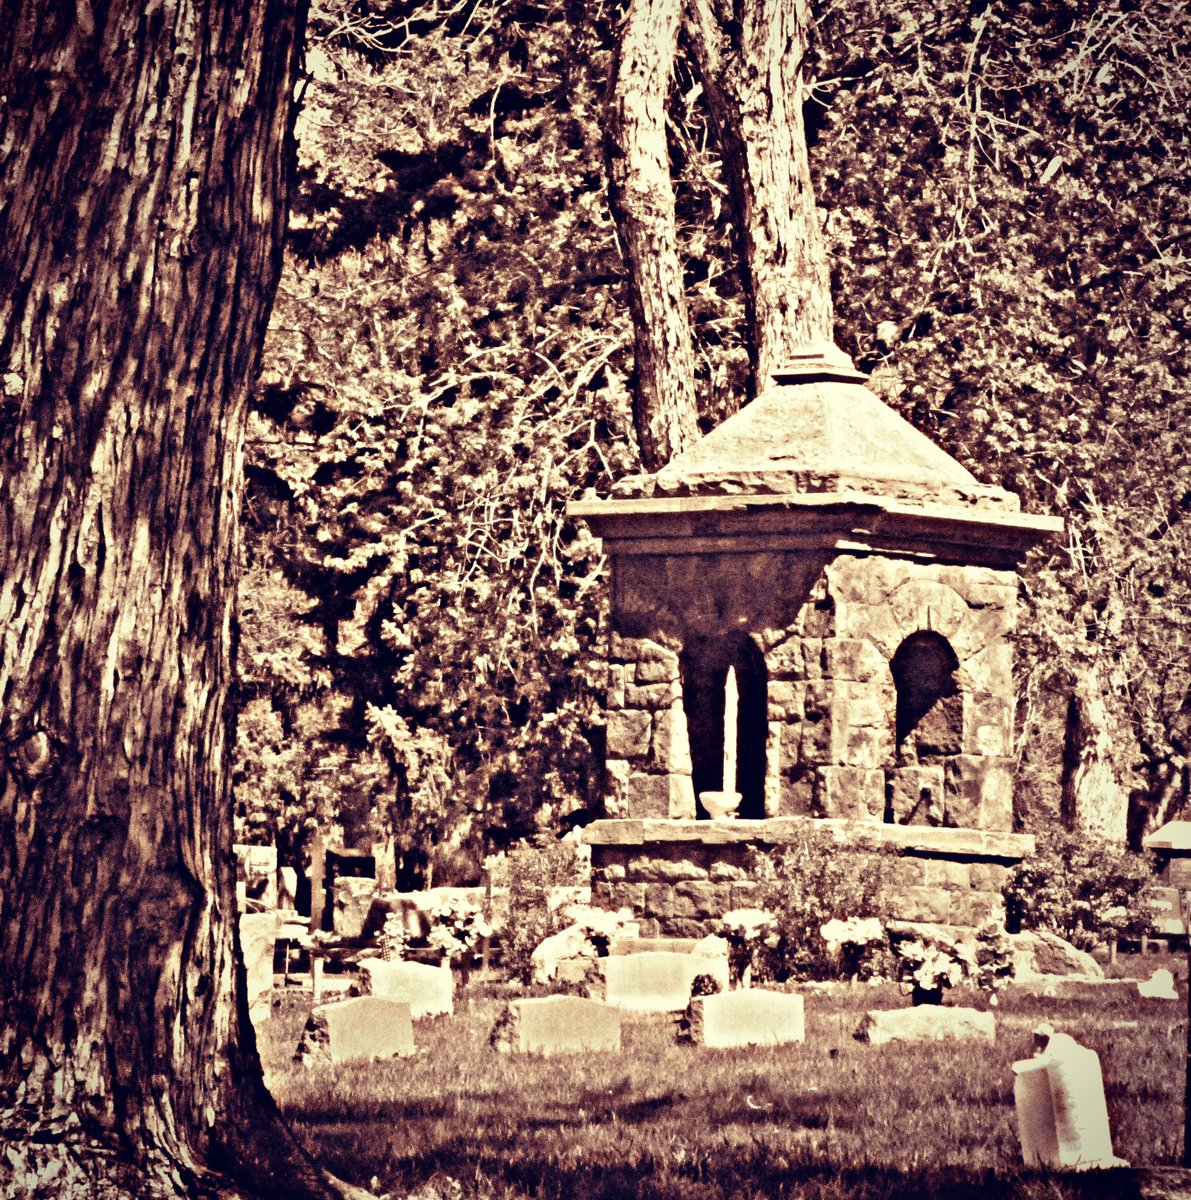 Lay me down in the ground deep down In my final bed Let me lie where the great peak rises Towering above my head. ~ Forest P. Porter  #cemetery #grave #poetry #poem #podcast #newepisode #newpodcast #podcasts #PodcastRecommendations #History #Colorado #ColoradoSprings https://t.co/l2Of2EvqNI